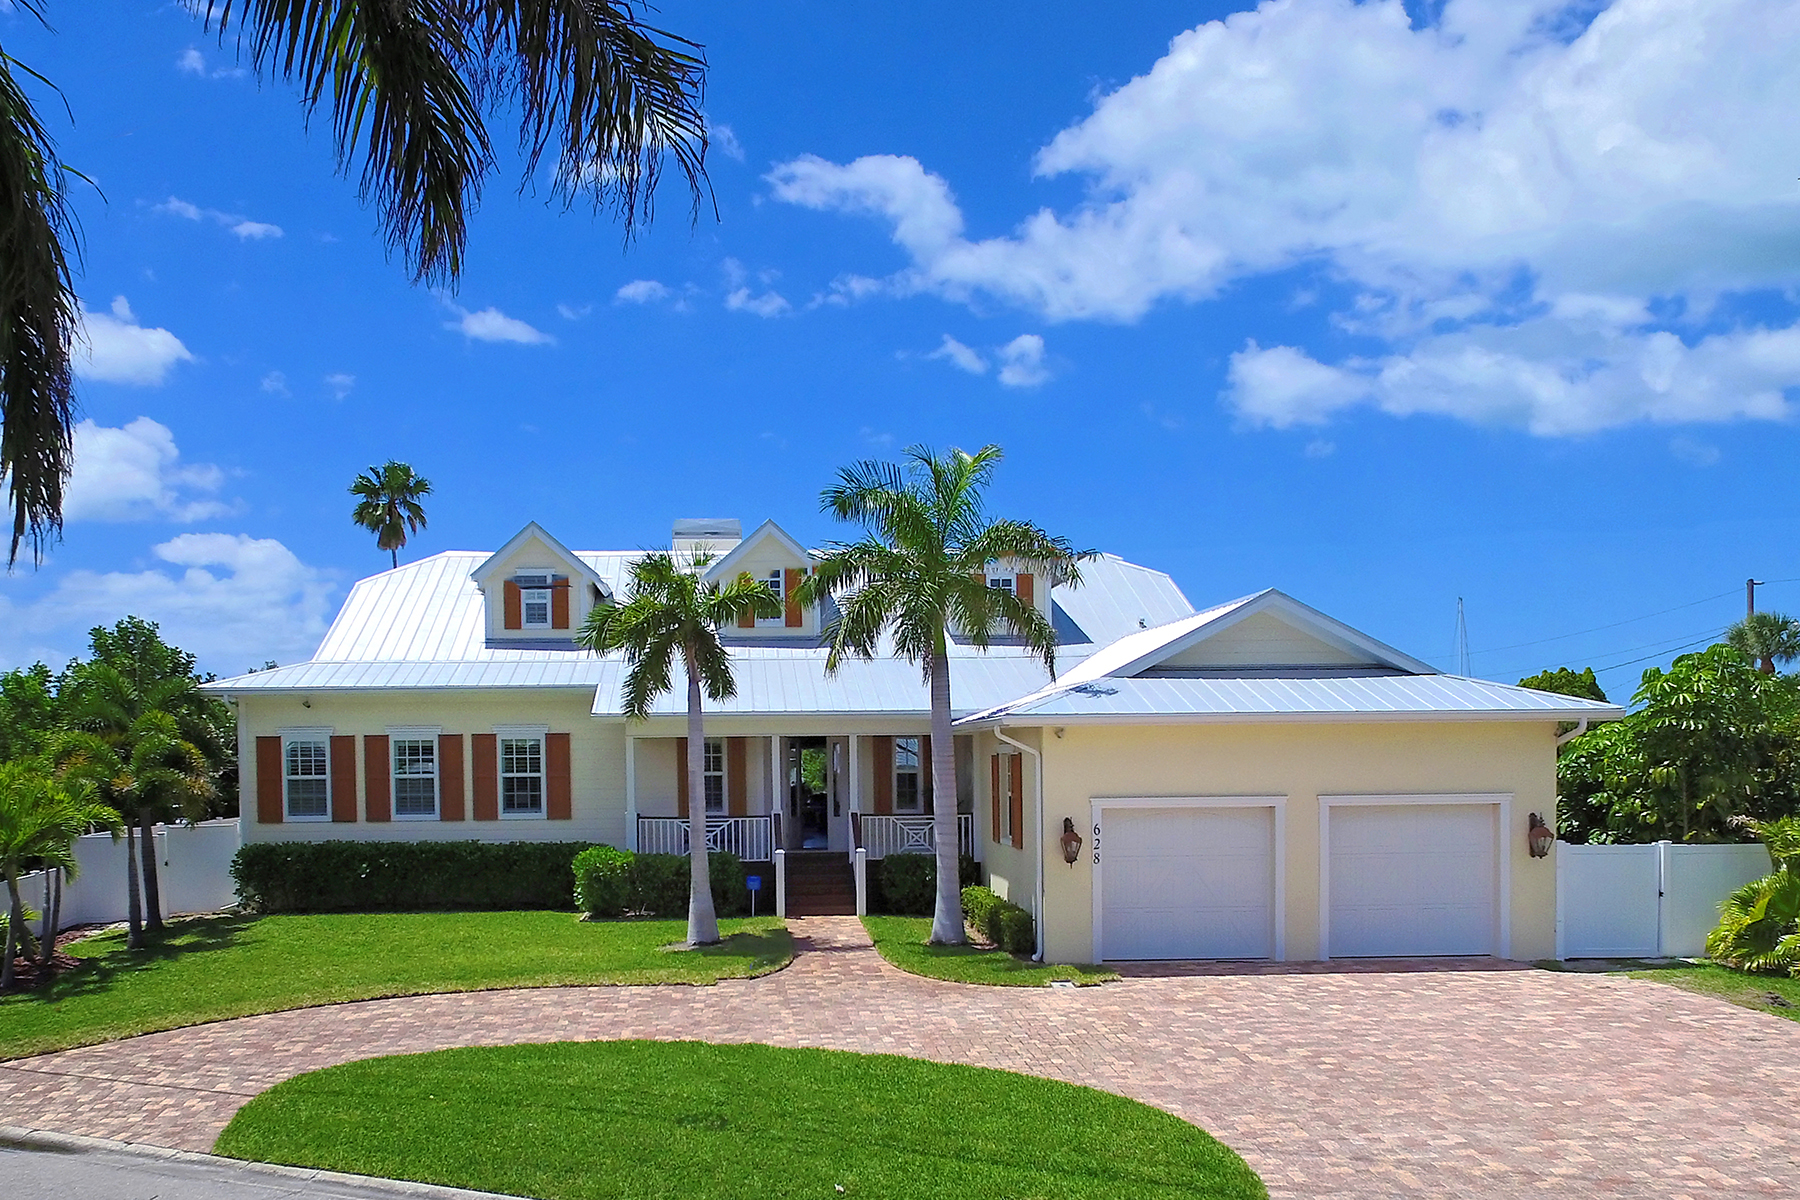 Single Family Home for Sale at HOLMES BEACH 628 Key Royale Dr Holmes Beach, Florida, 34217 United States